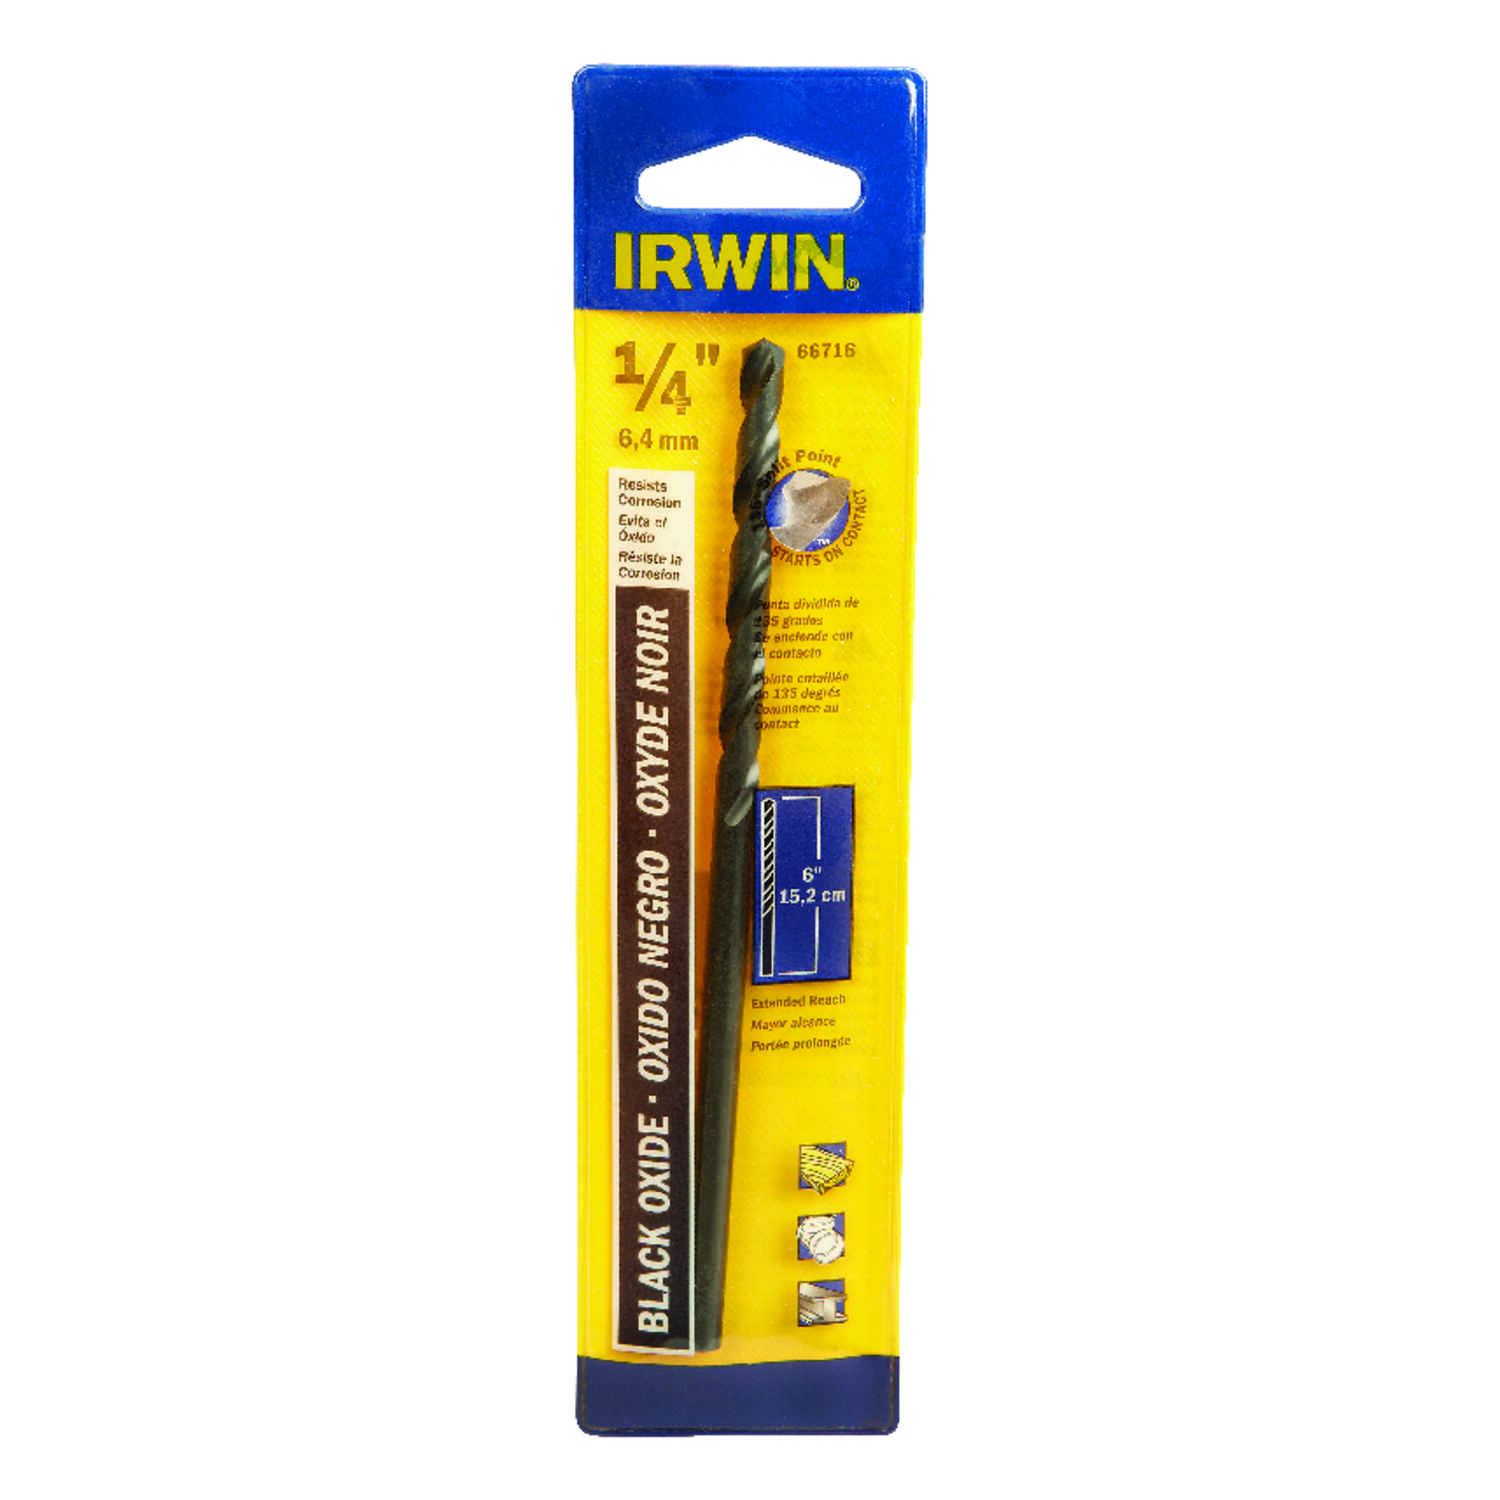 Irwin  1/4 in. Dia. x 6 in. L High Speed Steel  Split Point Drill Bit  1 pc.